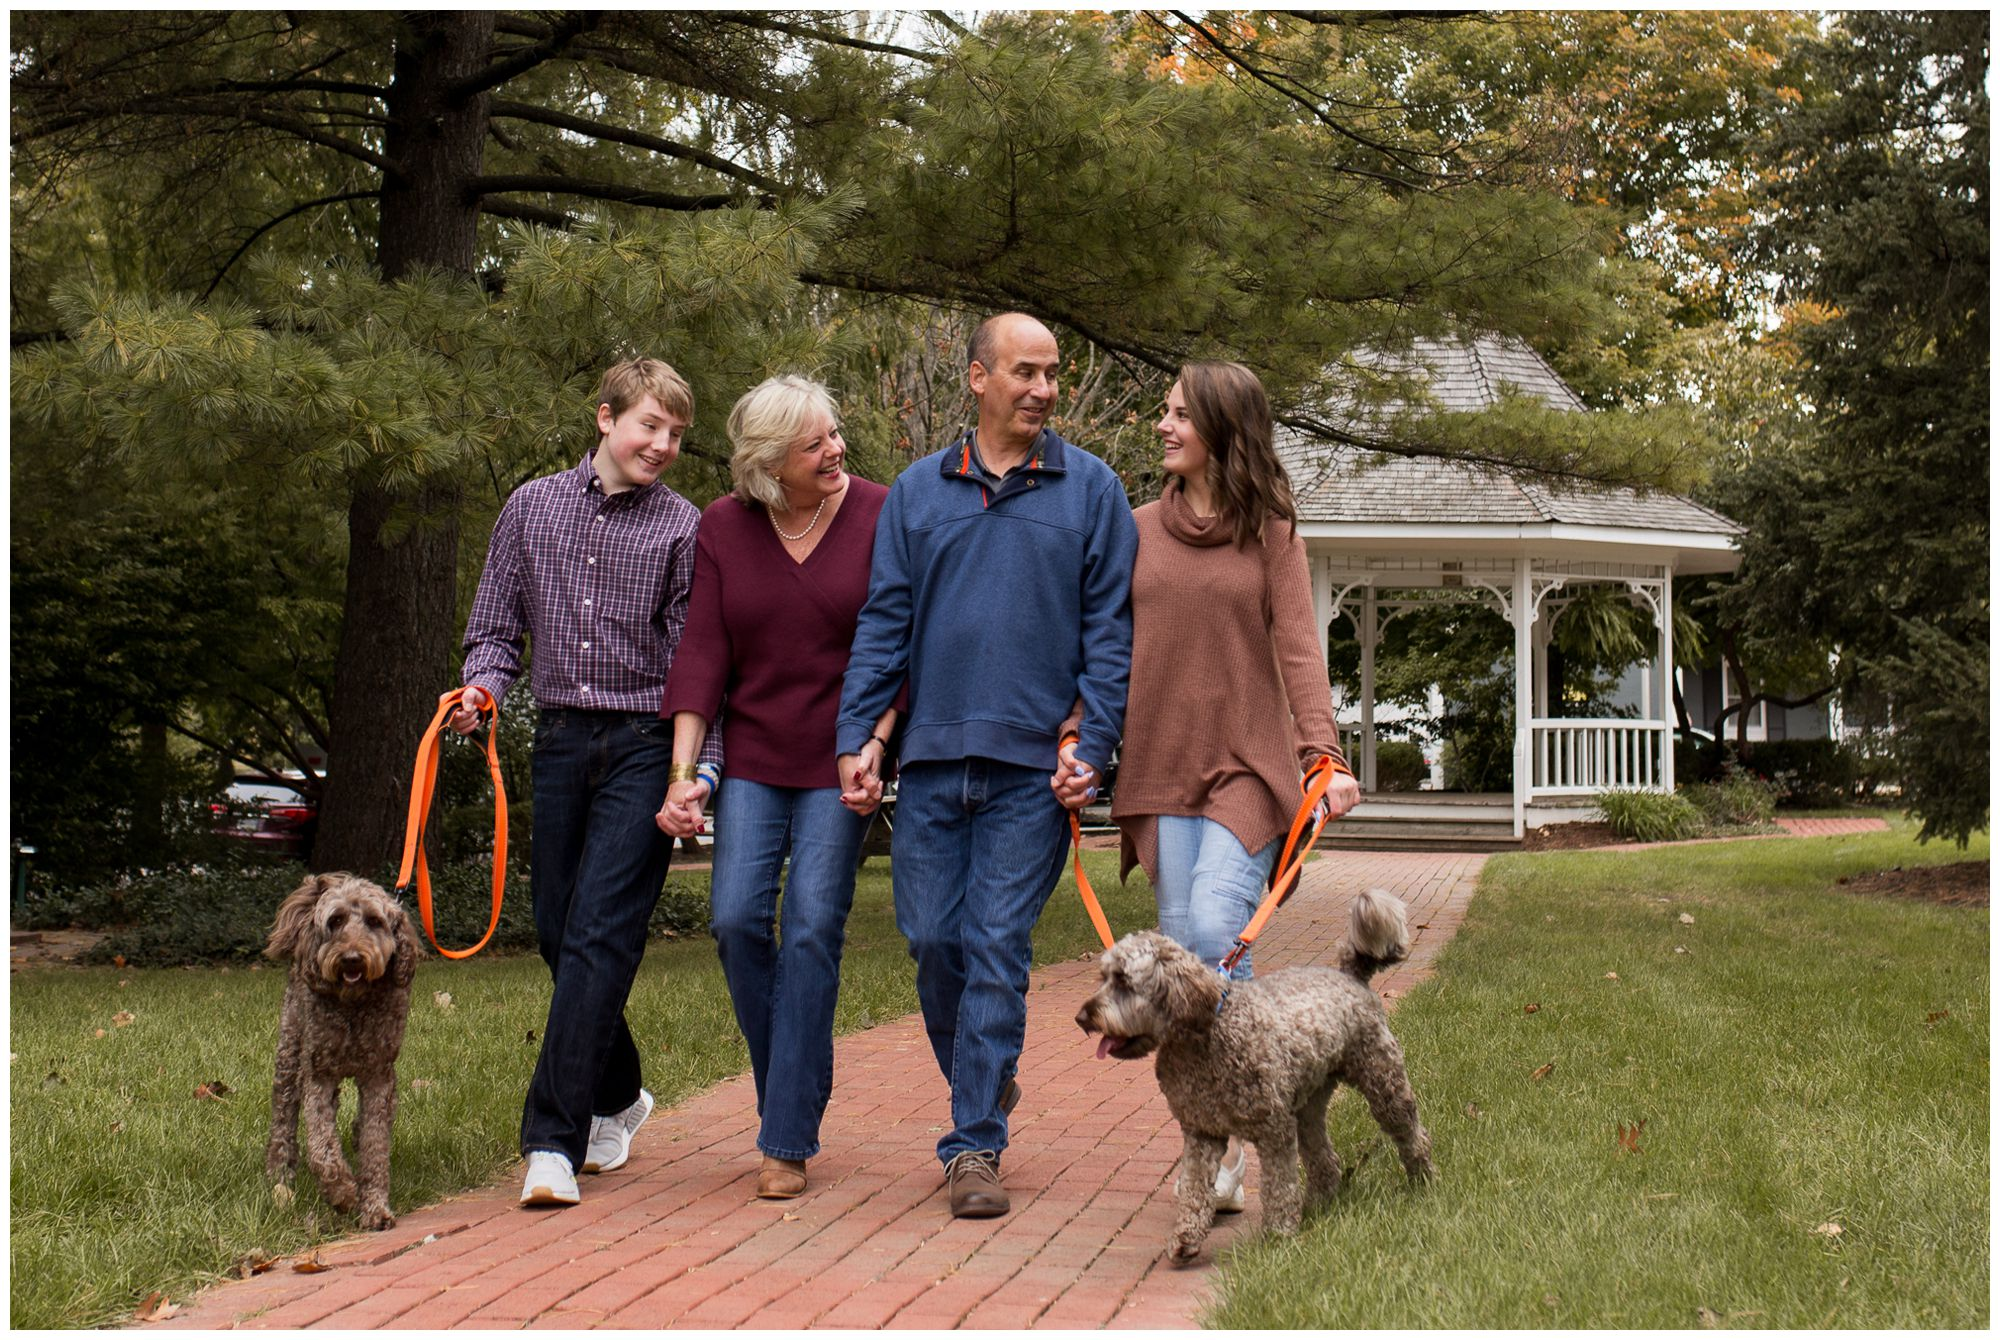 family walks dogs together during downtown Zionsville family session